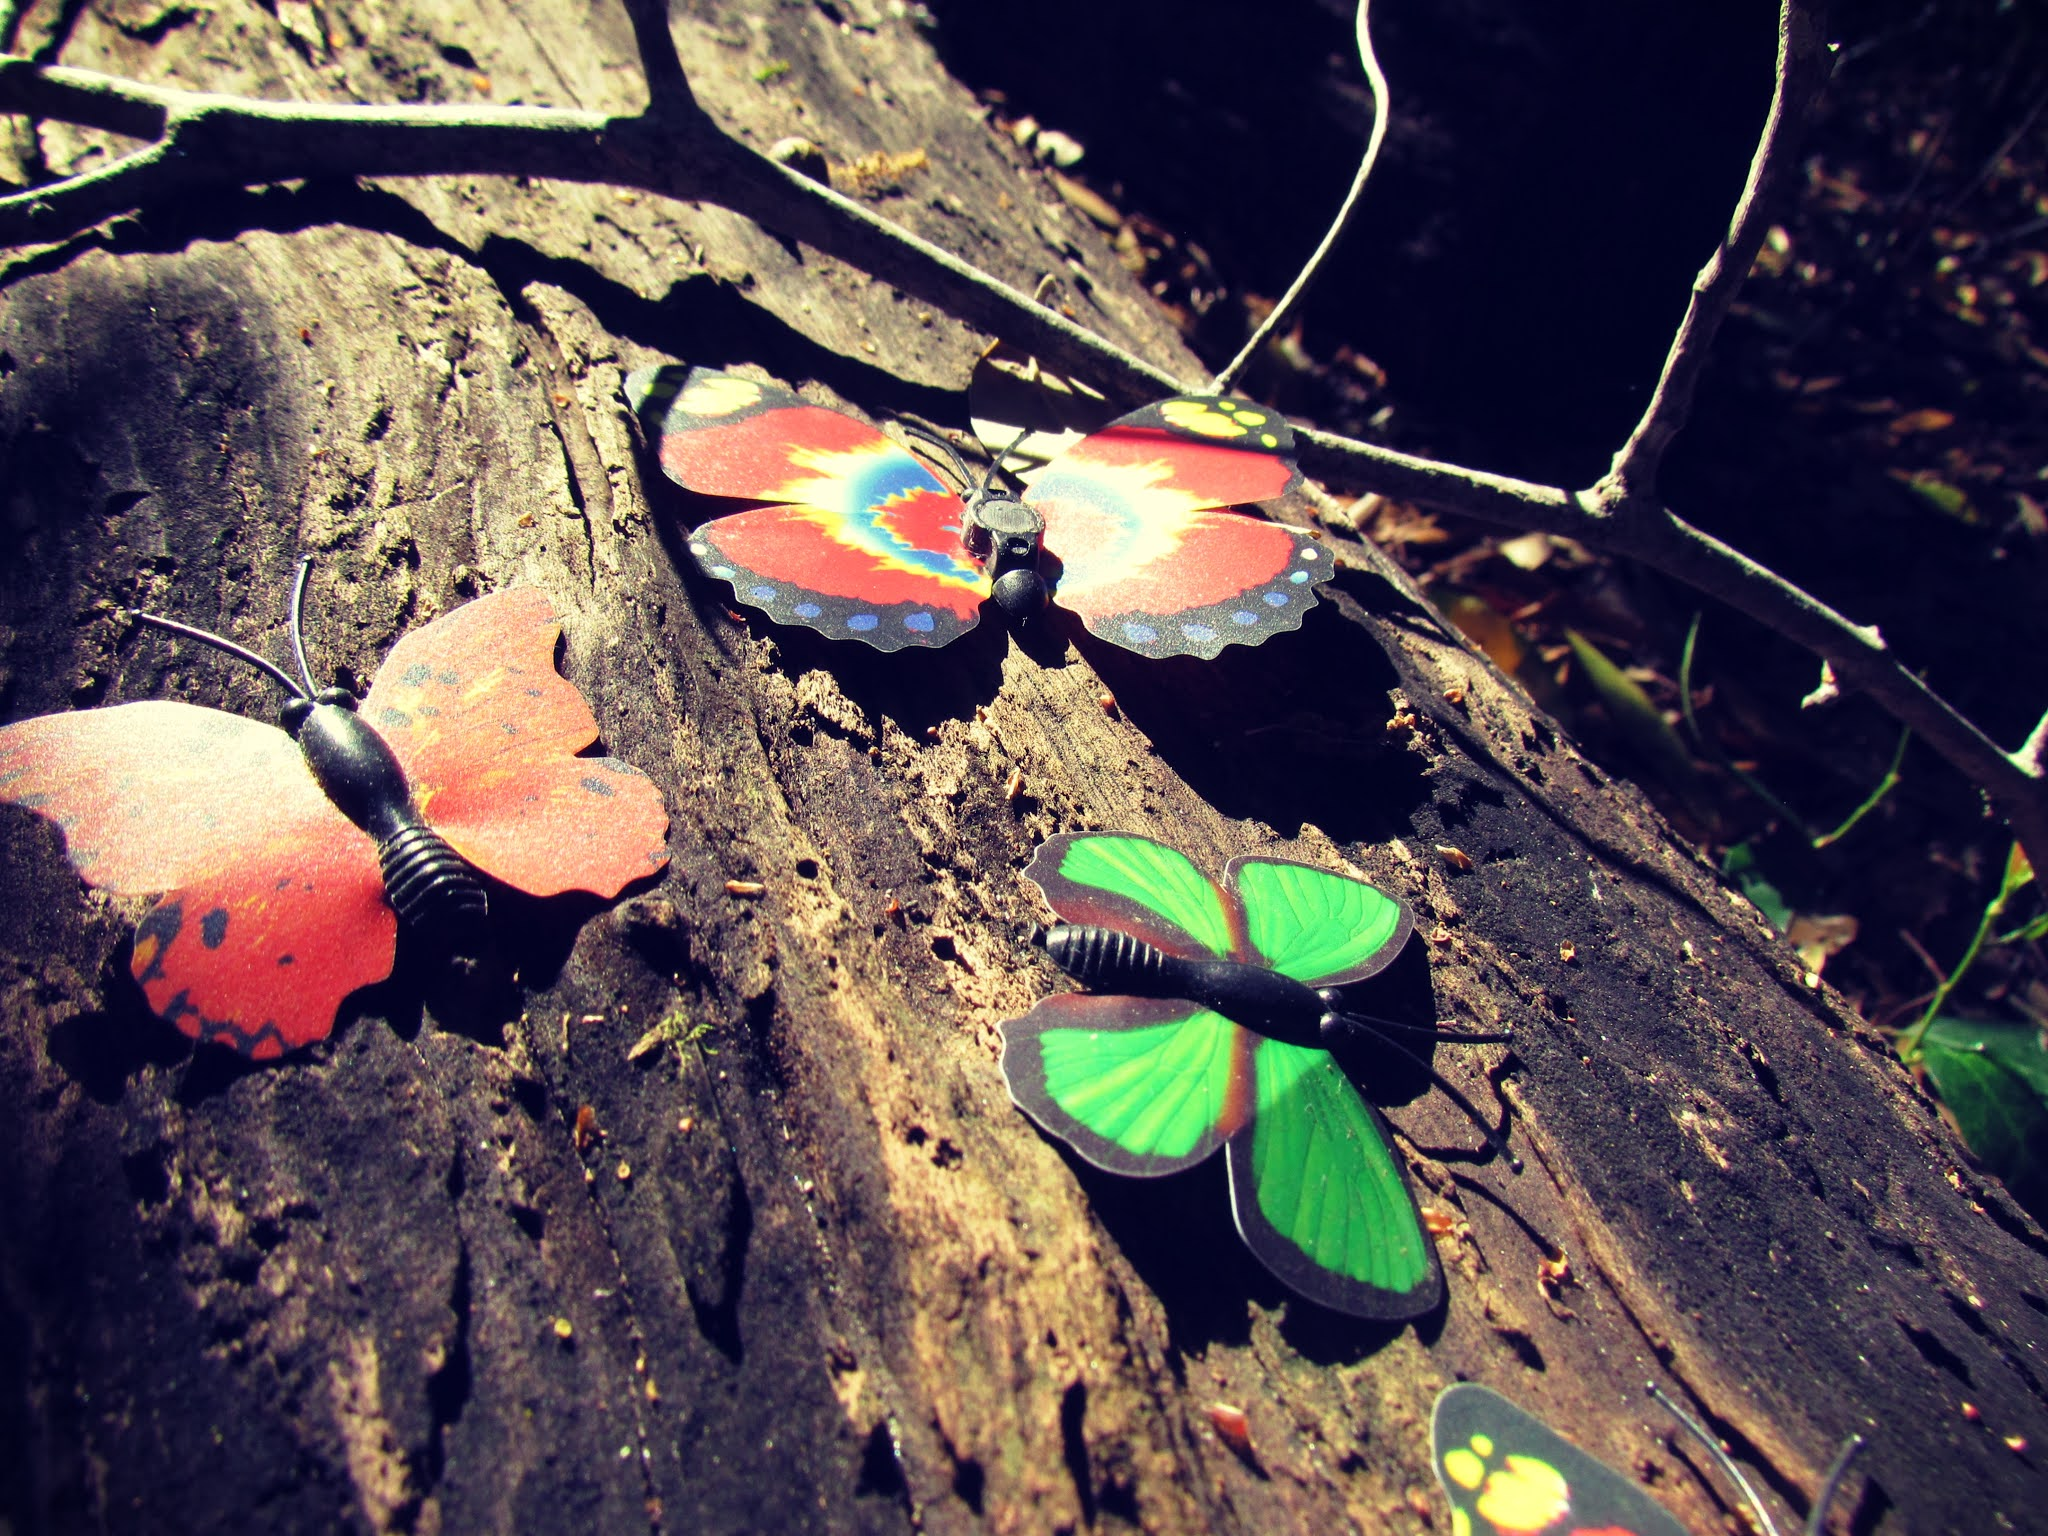 Colorful butterfly magnets on a wooden log in mother nature surrounded by the magic of trees